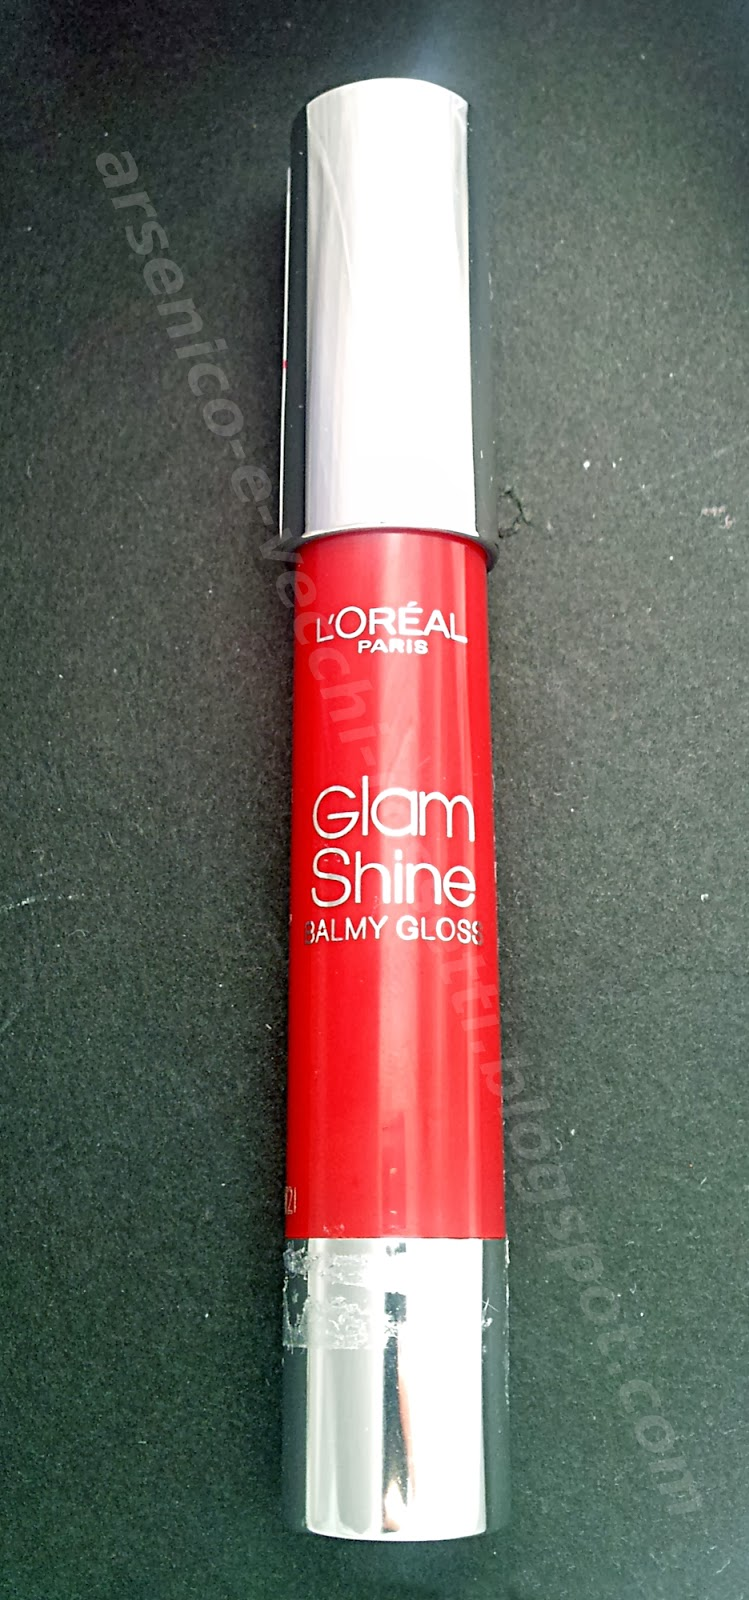 L'Oréal Paris Glam Shine Balmy Gloss #900 Miss Cherry